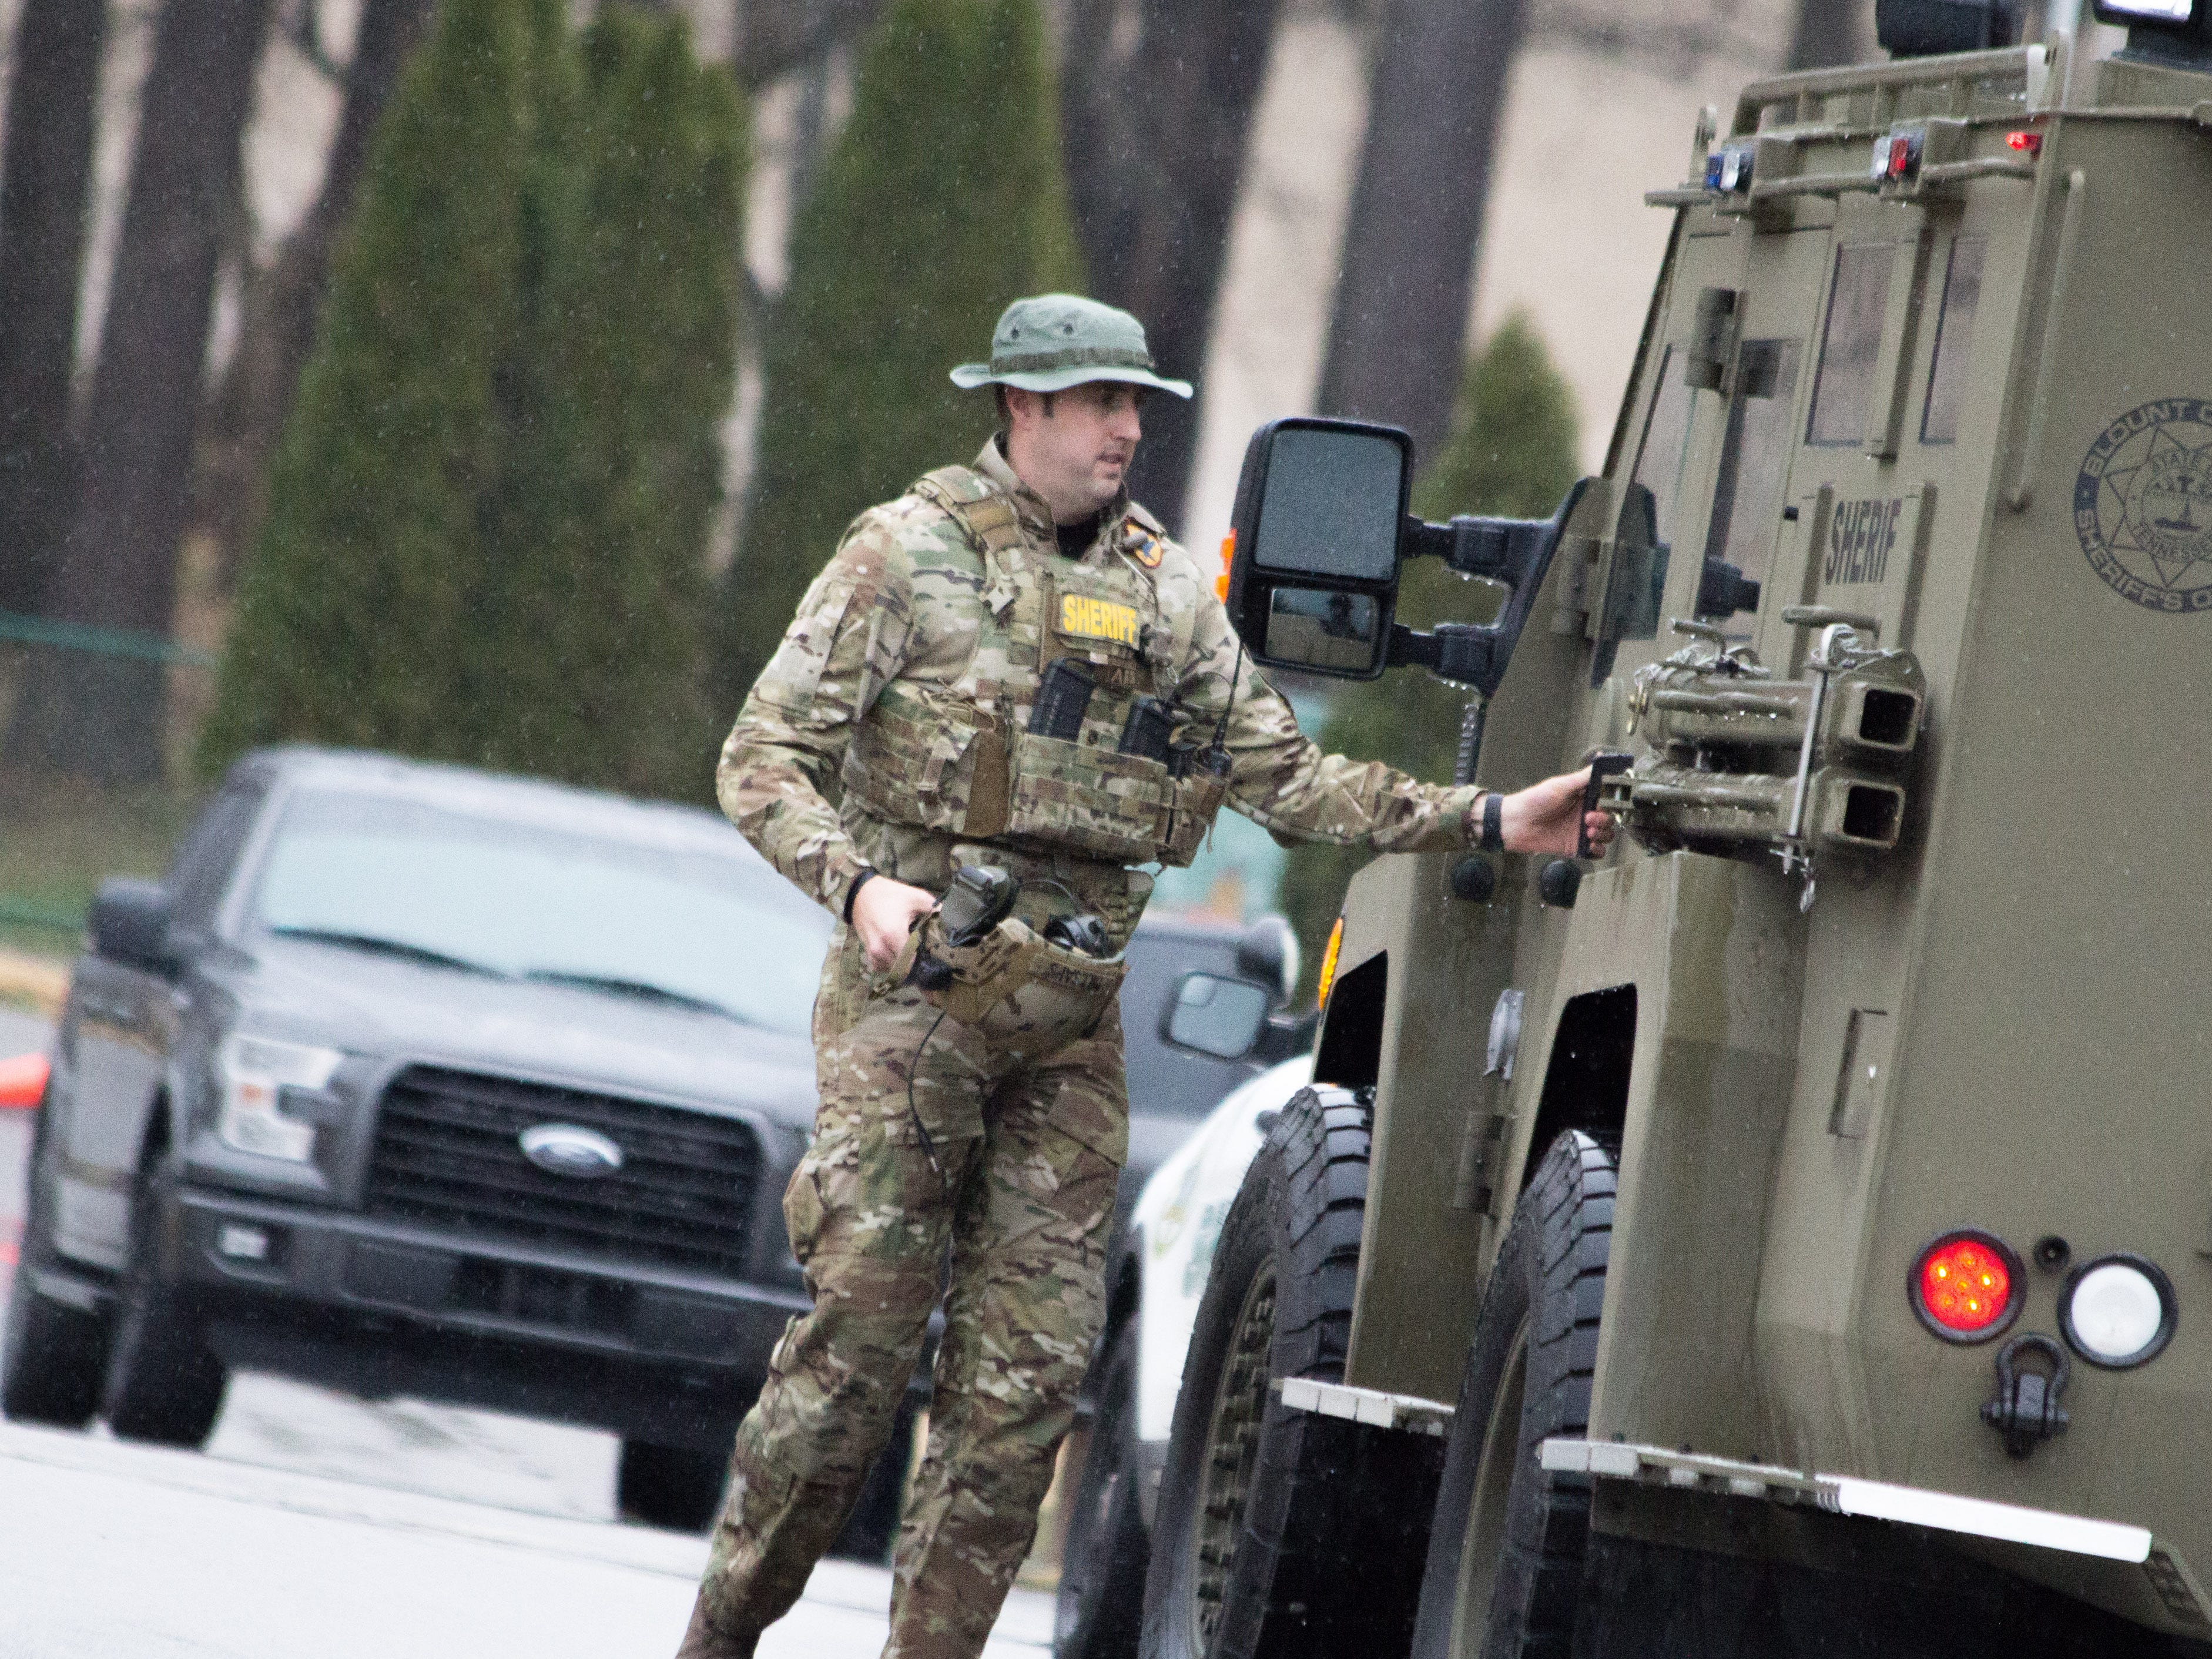 An officer parks a SWAT vehicle as officers prepare to make contact with a man during a fatal standoff at a Blount County apartment complex on Dec. 8, 2018. The man was shot at by officers before shooting himself.